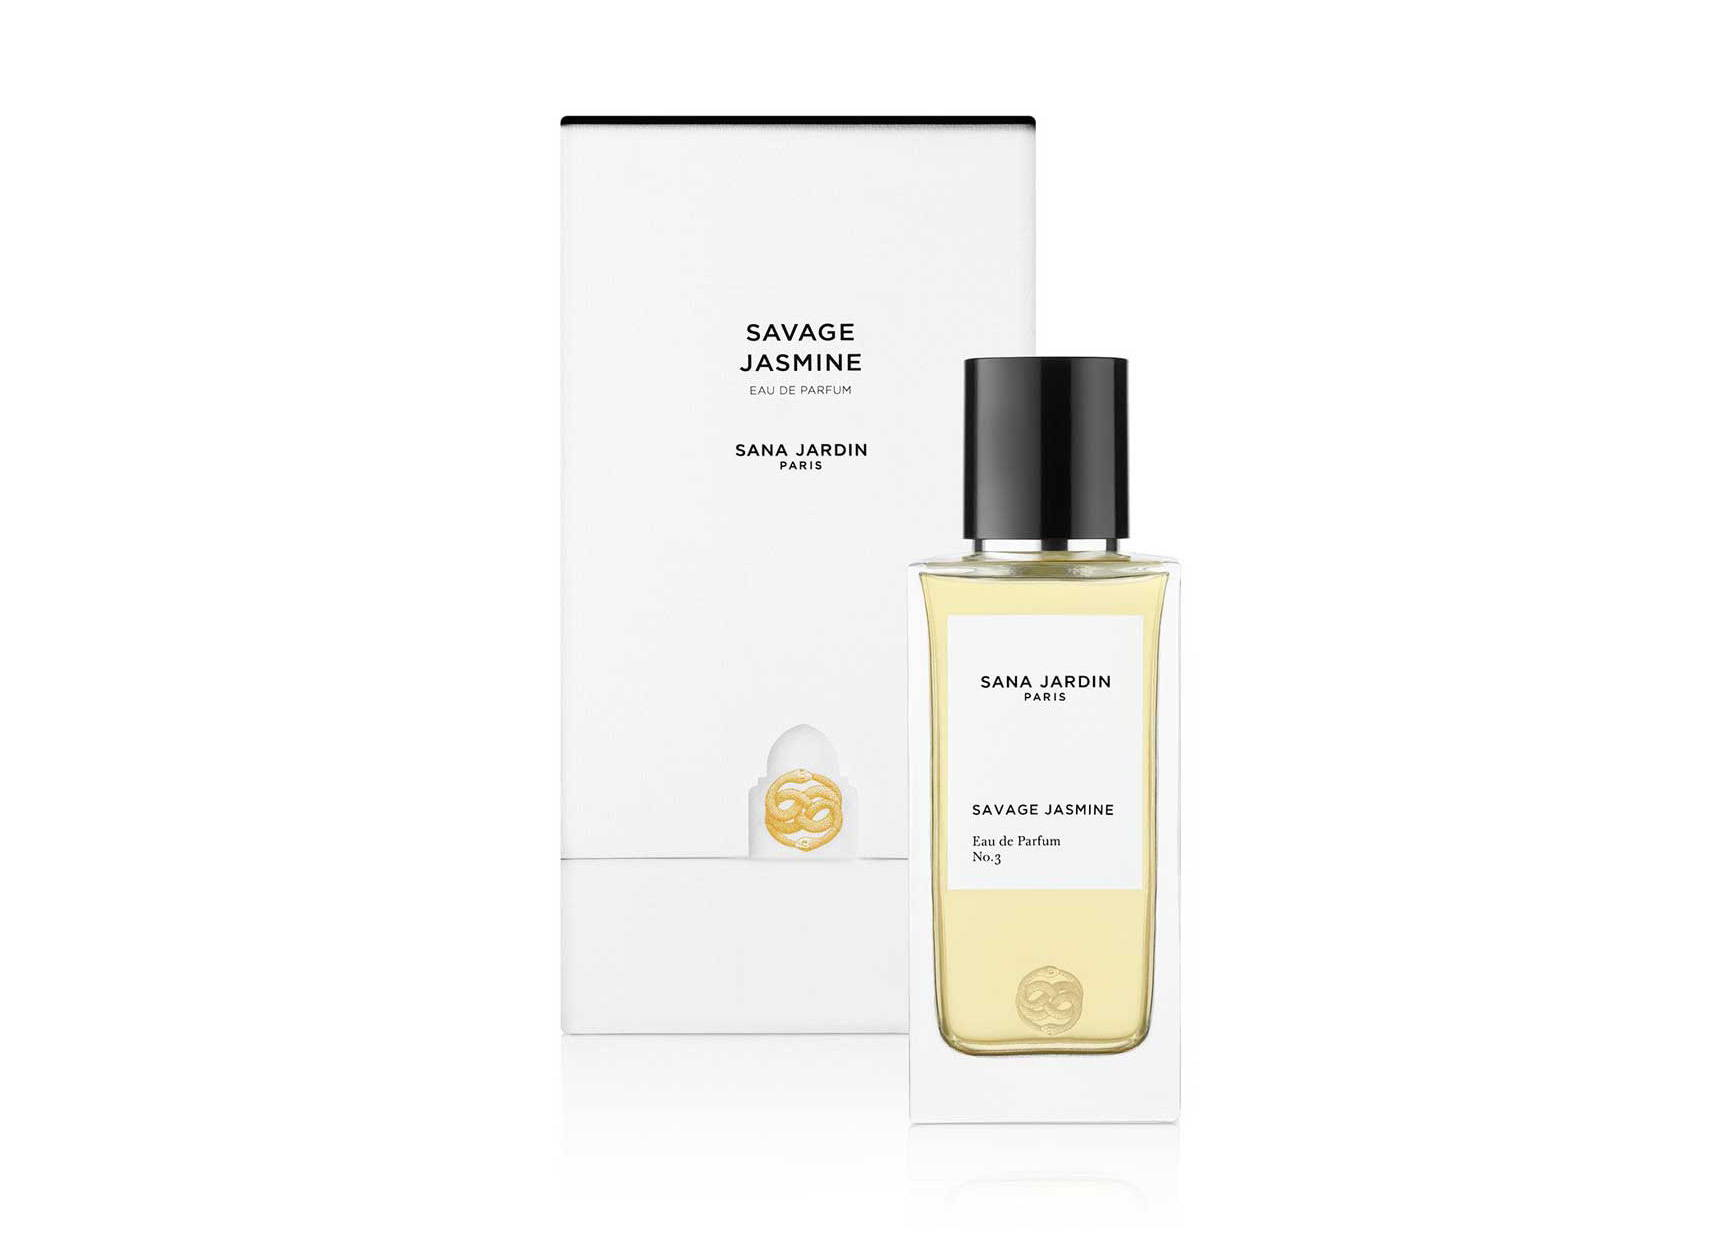 Sana Jardin Fragrance of Savage Jasmine 50ml